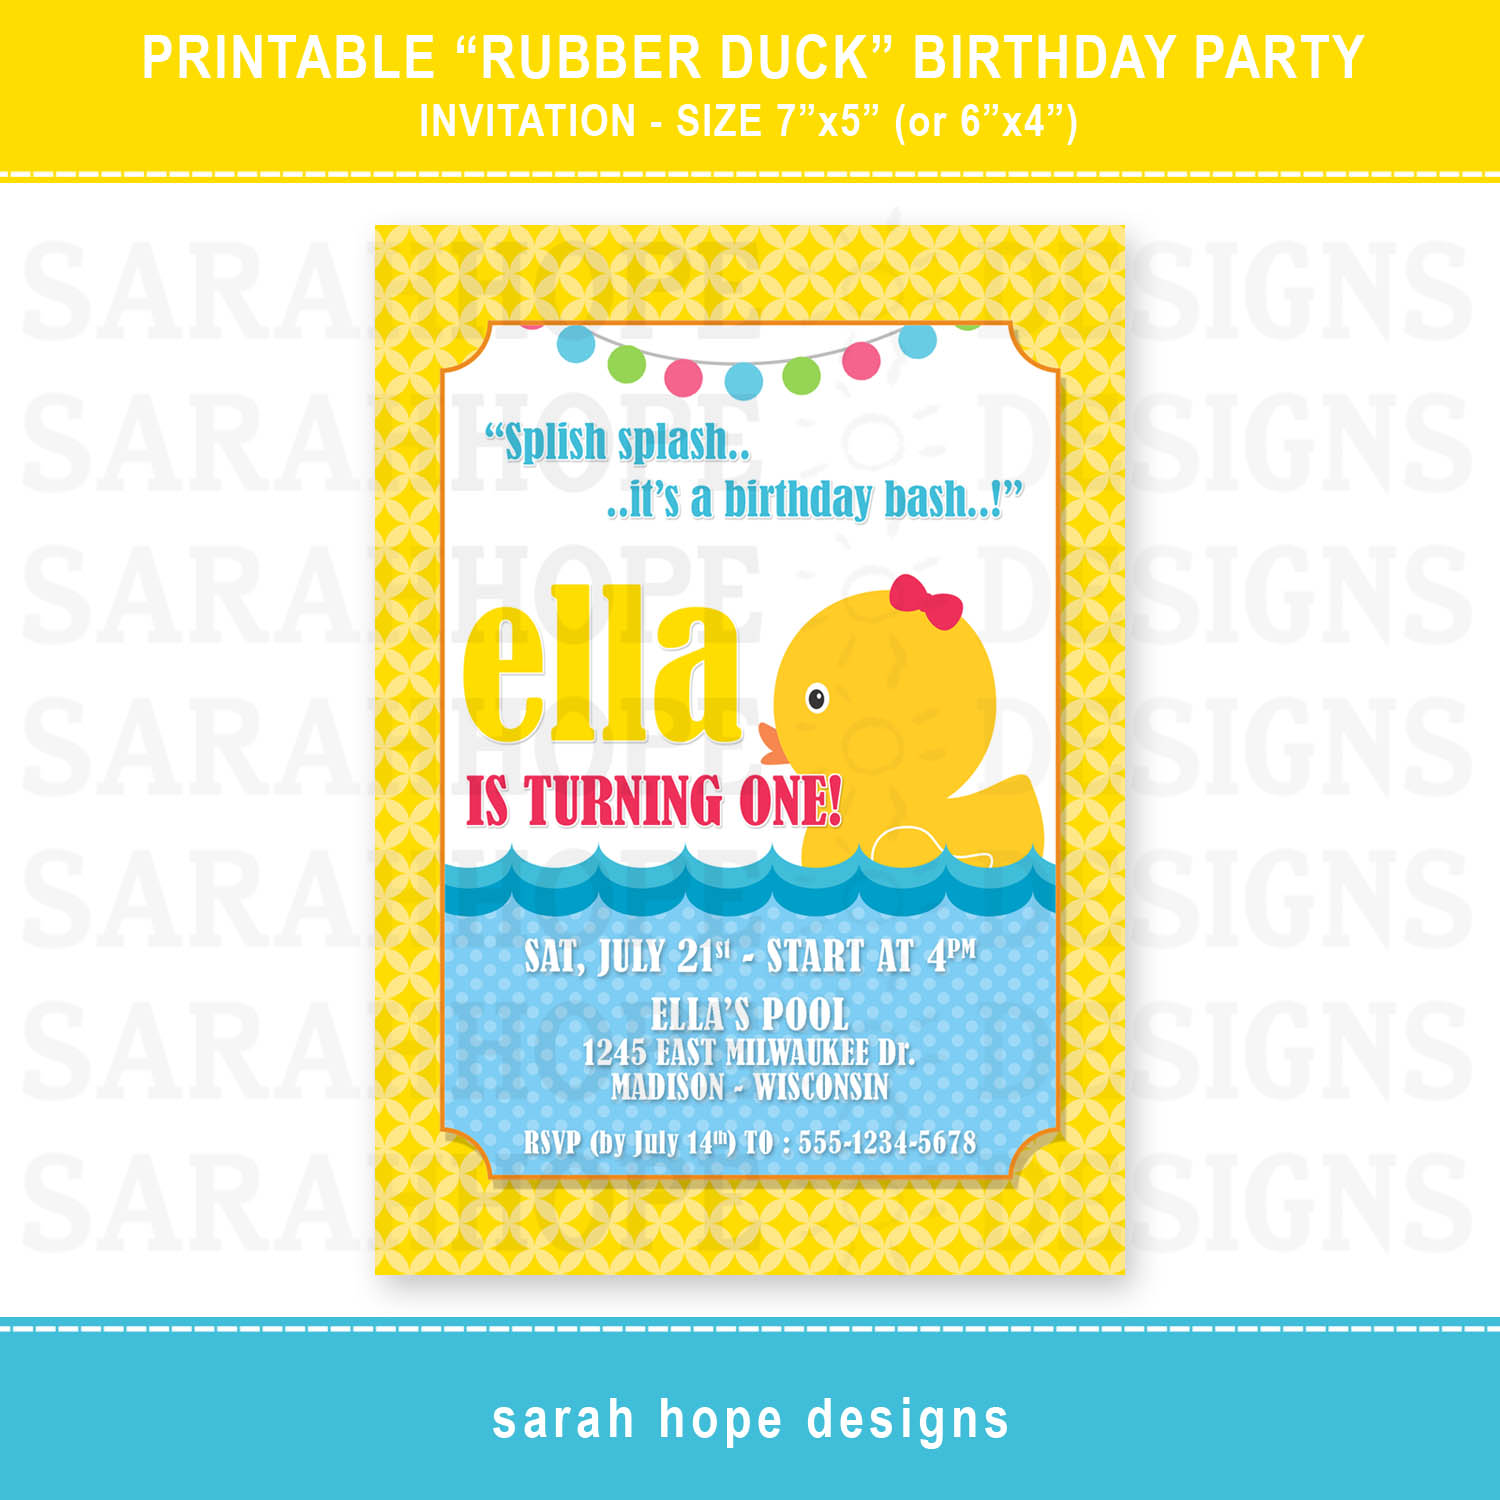 Sarah Hope Designs – Rubber Duck Birthday Invitations